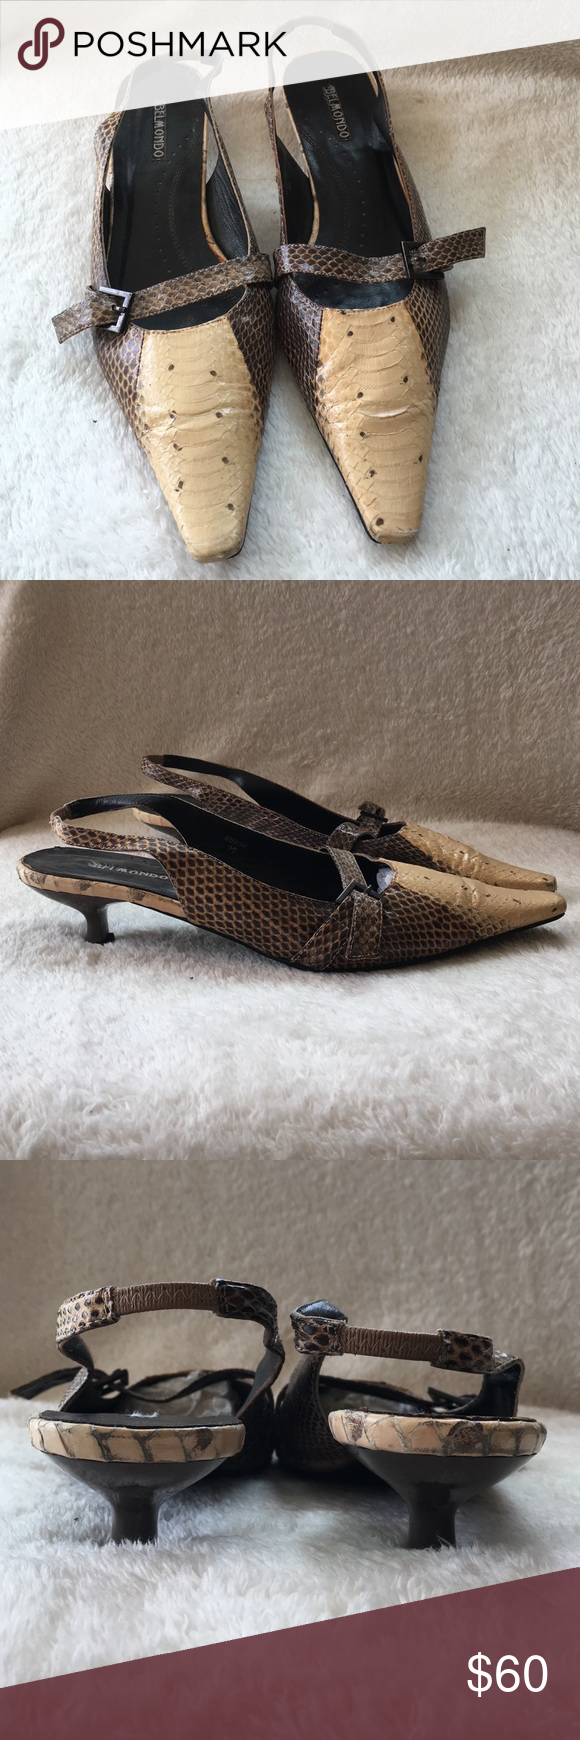 💘! Belmondo snake skin kitten heels Rare, vintage, Belmondo snake skin kitten heel sling backs. Size 39 (9). Some wear on toes and heel but in overall great condition. Belmondo Shoes Heels